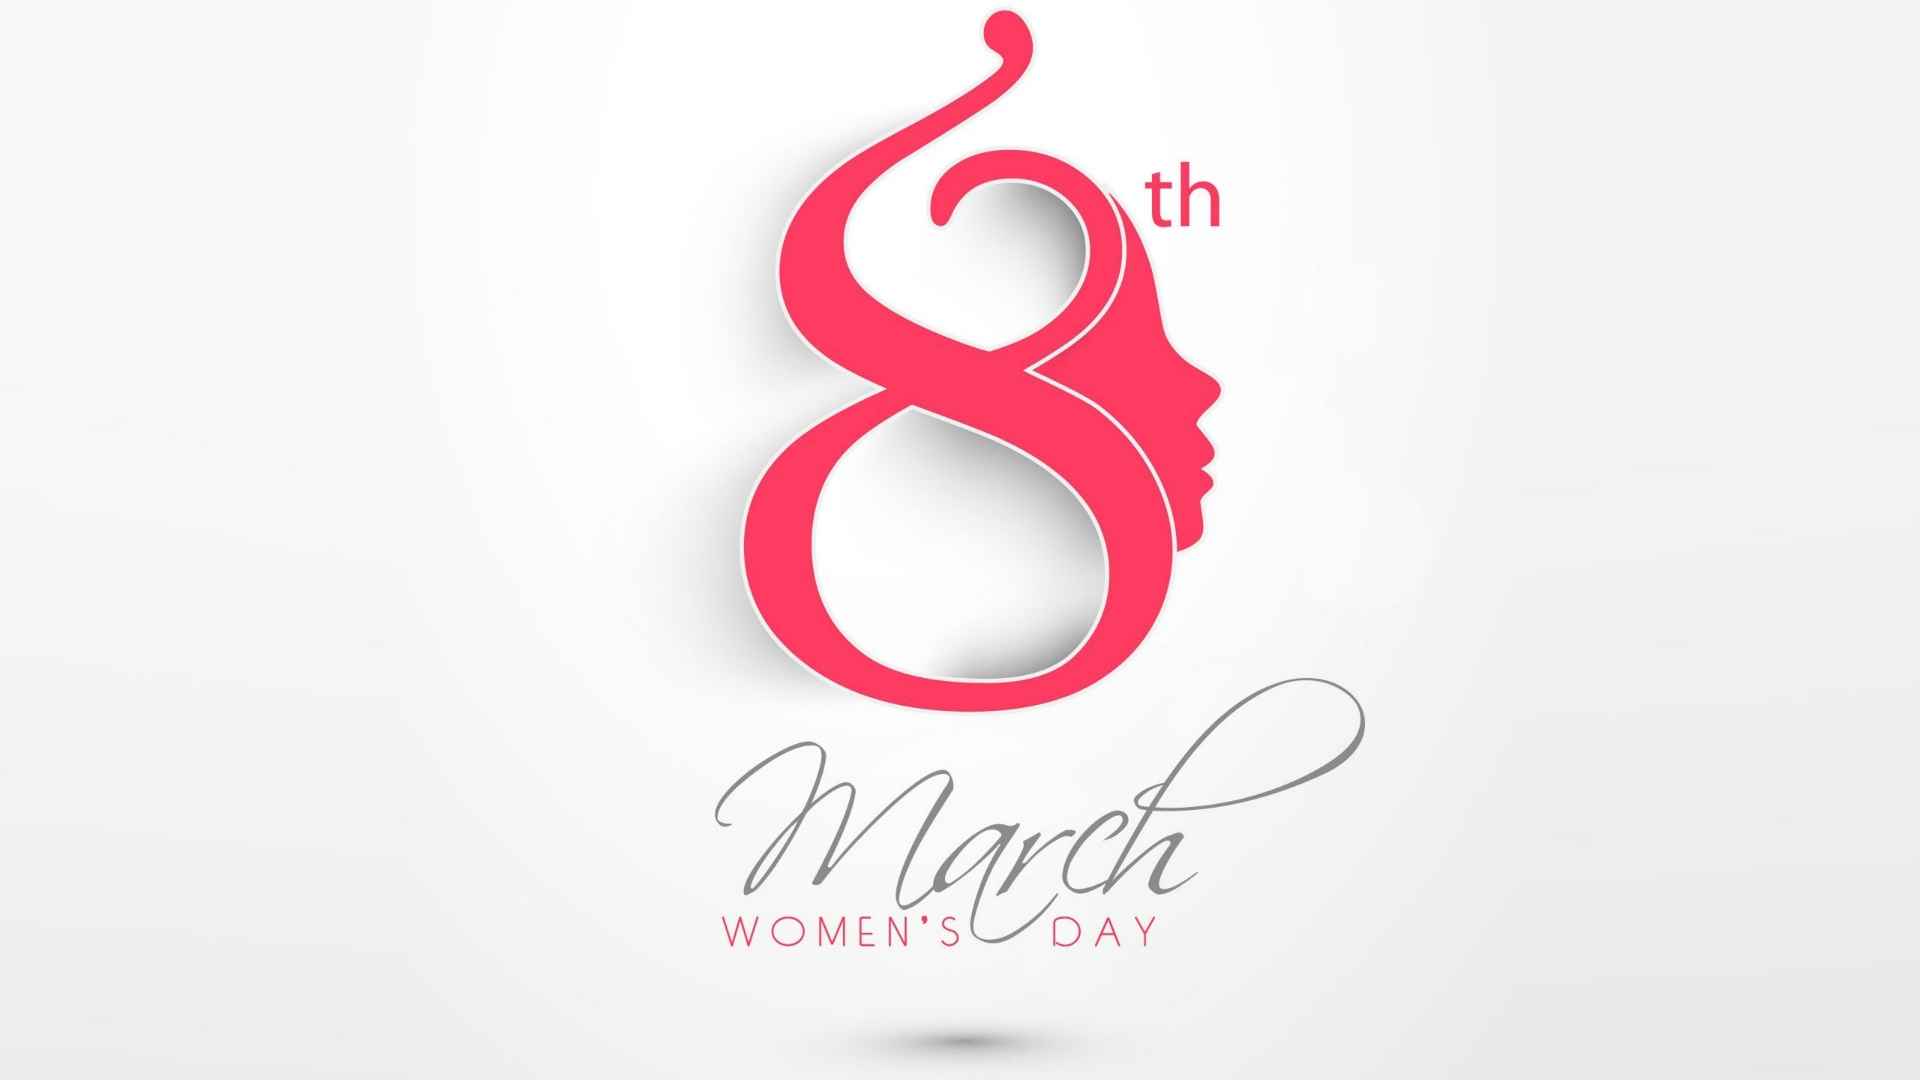 March 8 Women's Day Desktop Background 1920x1080